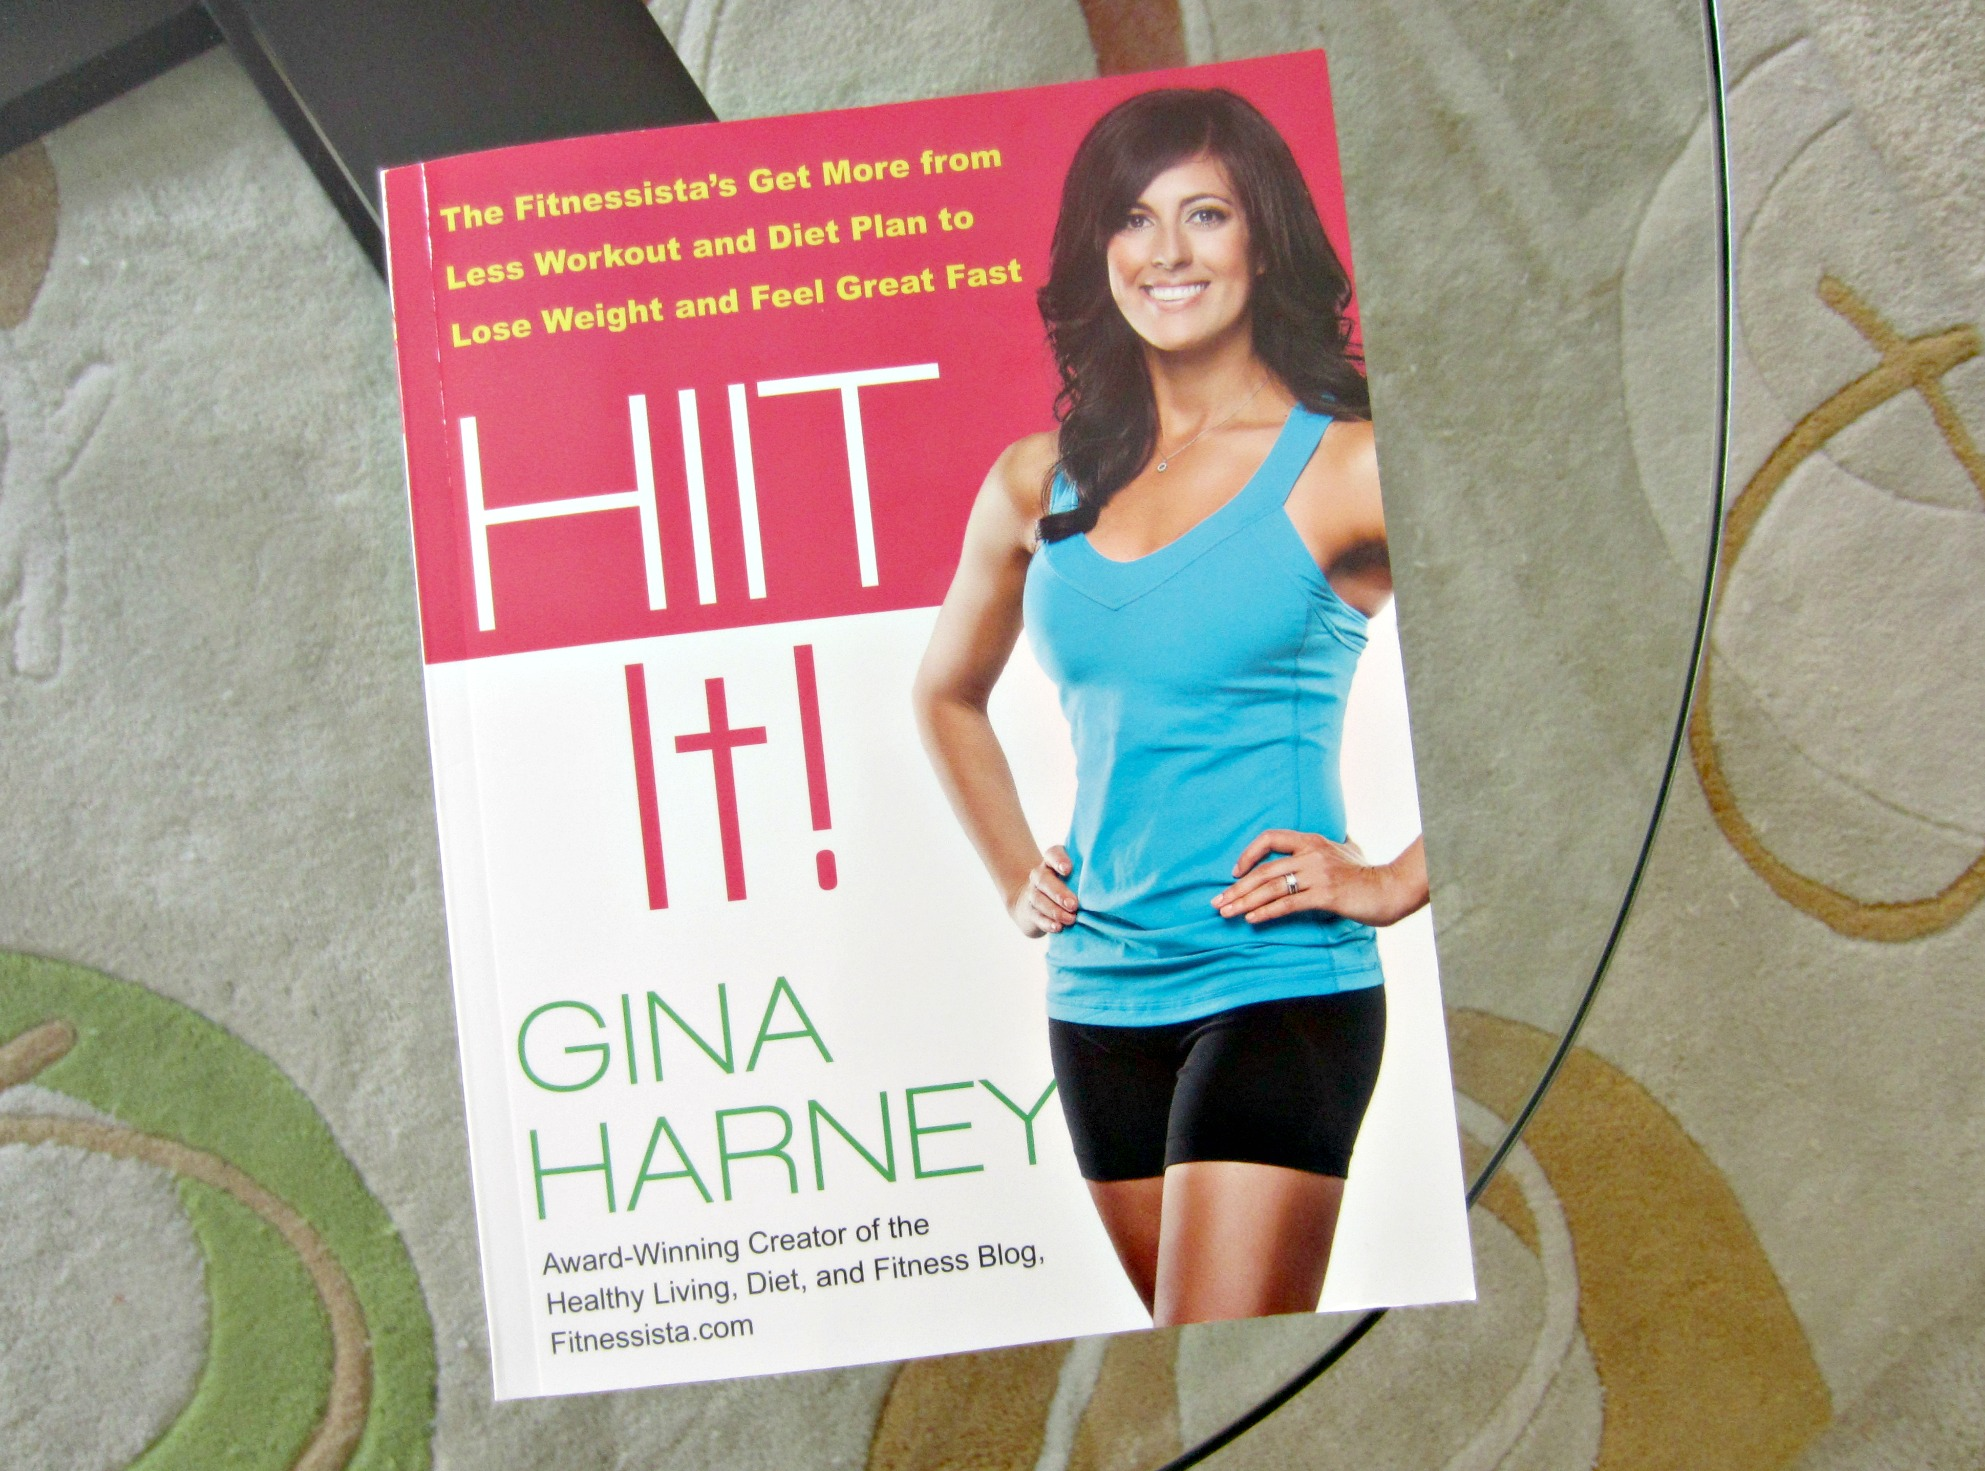 Fitnessista's HIIT It! book review